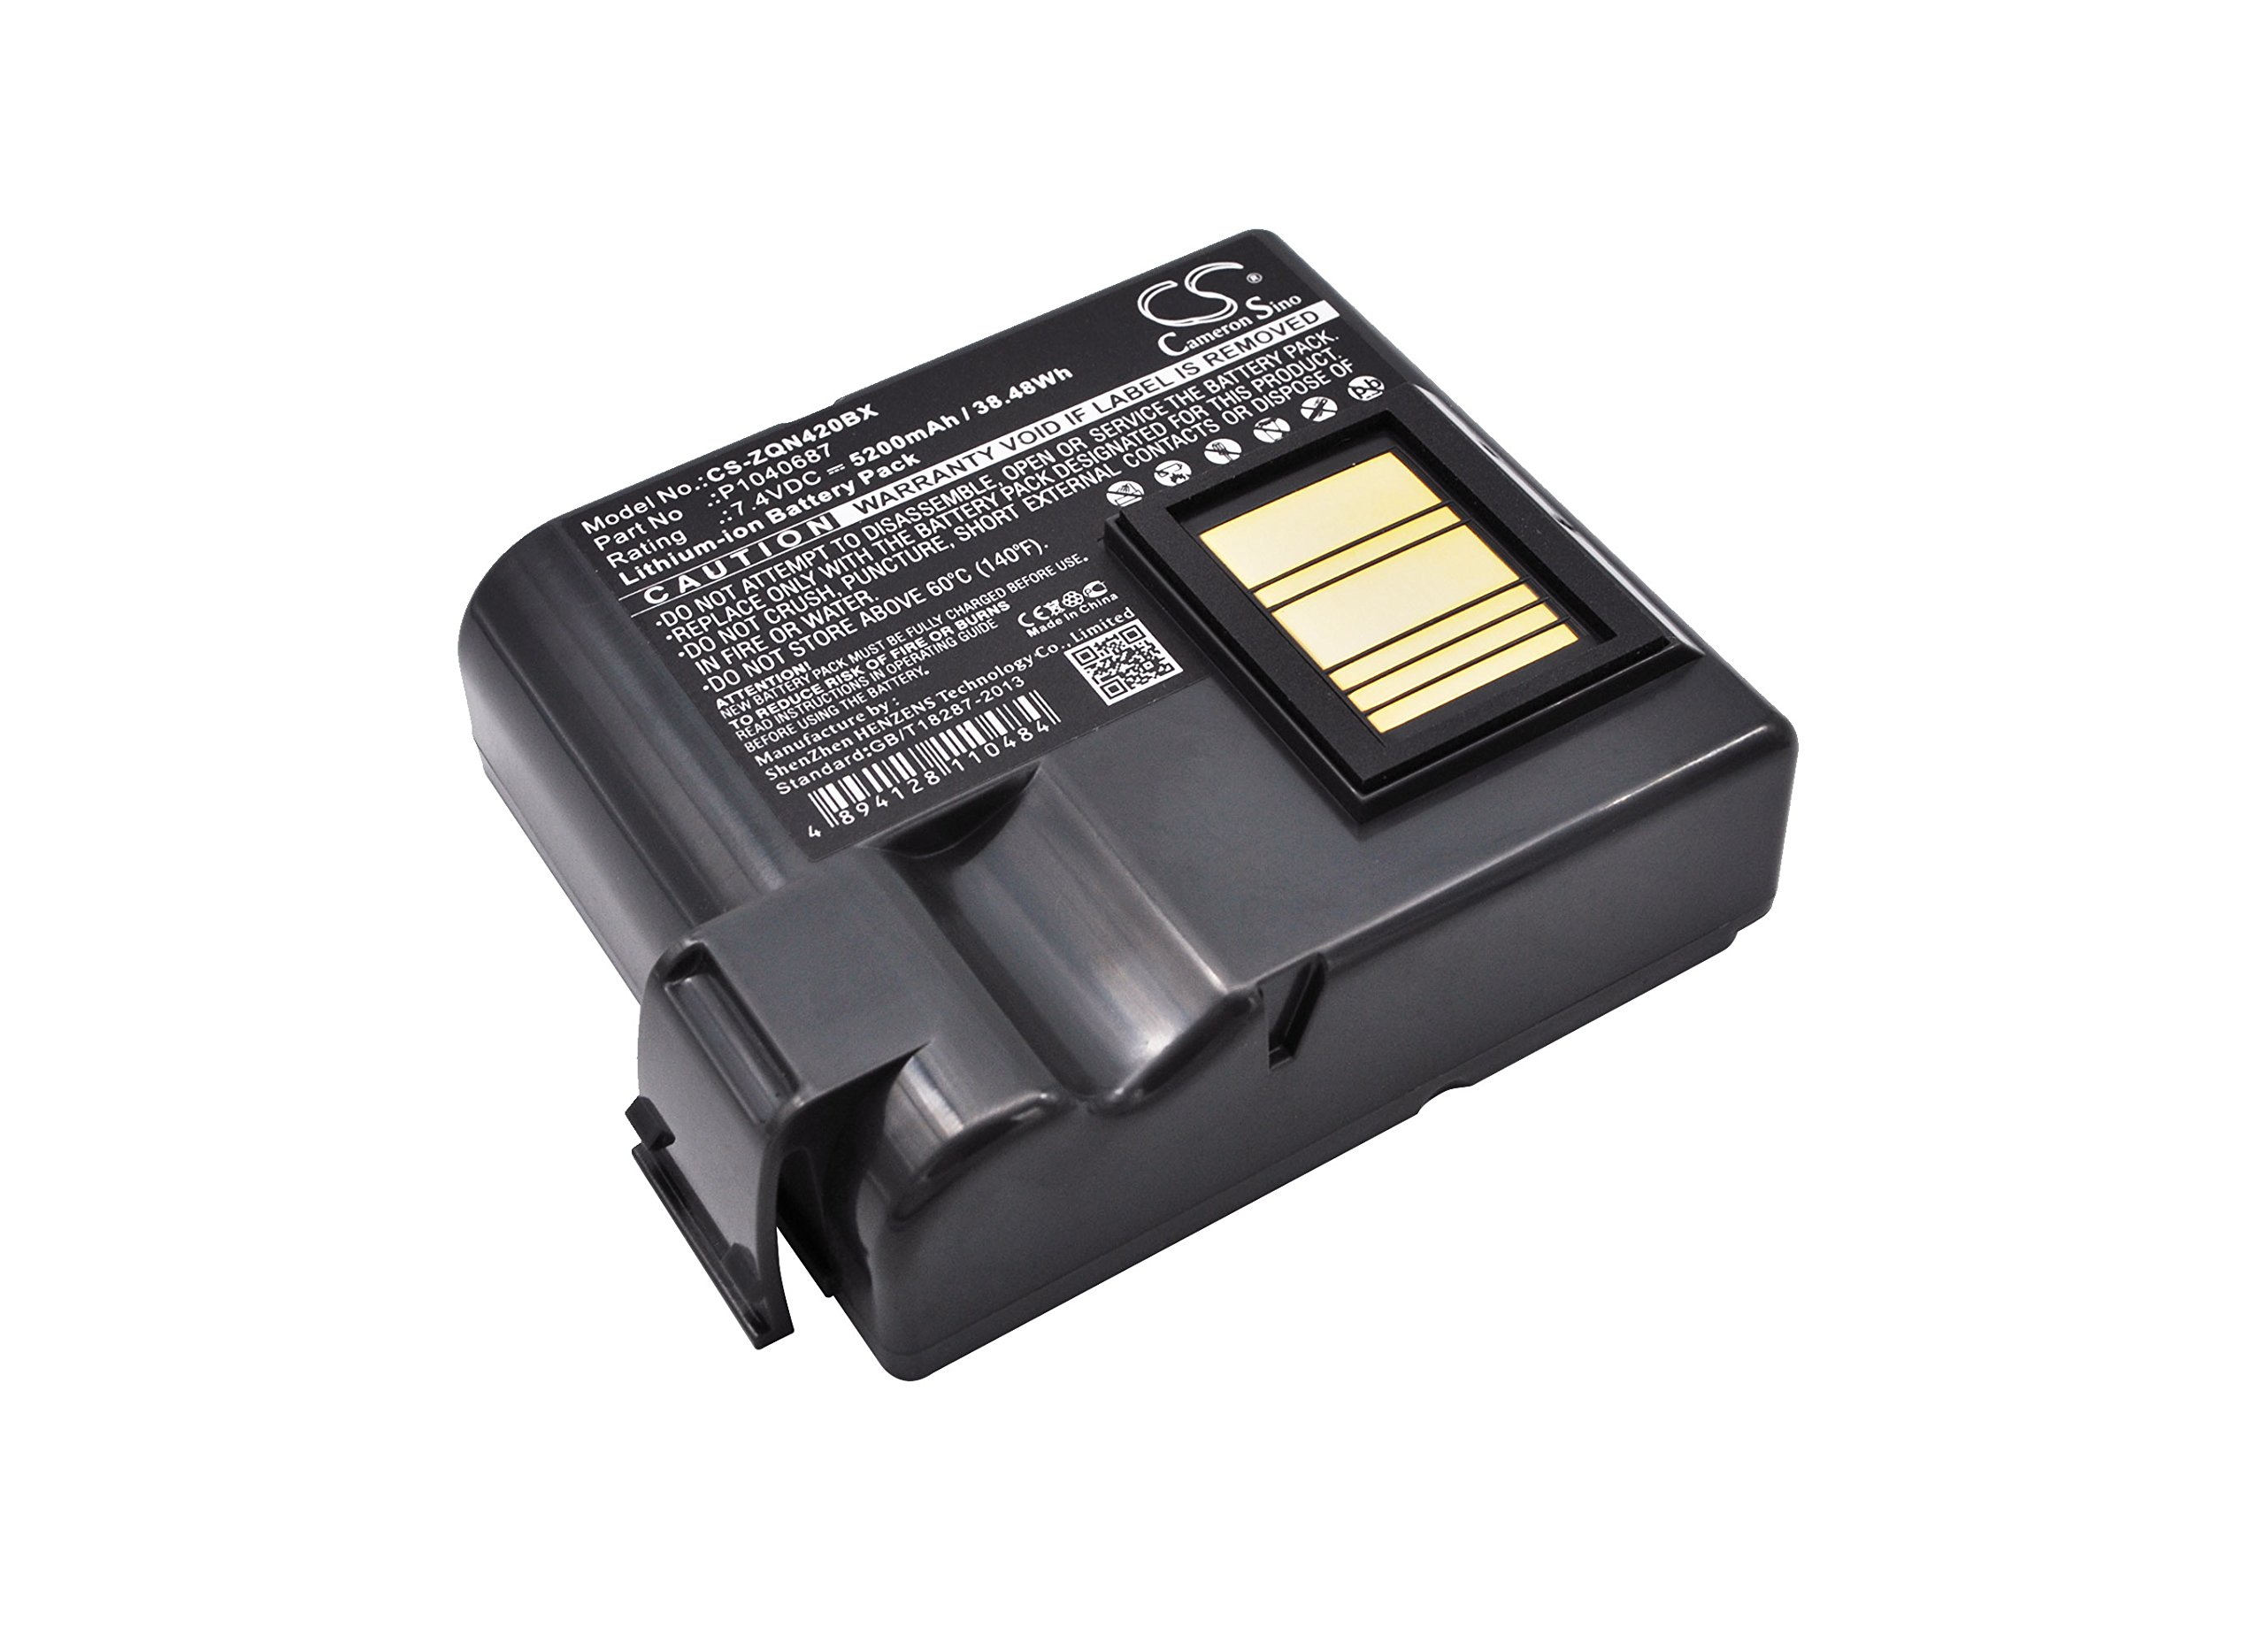 Replacement Battery for Zebra QLN420 P1040687 P1050667-016 by Bomibattery